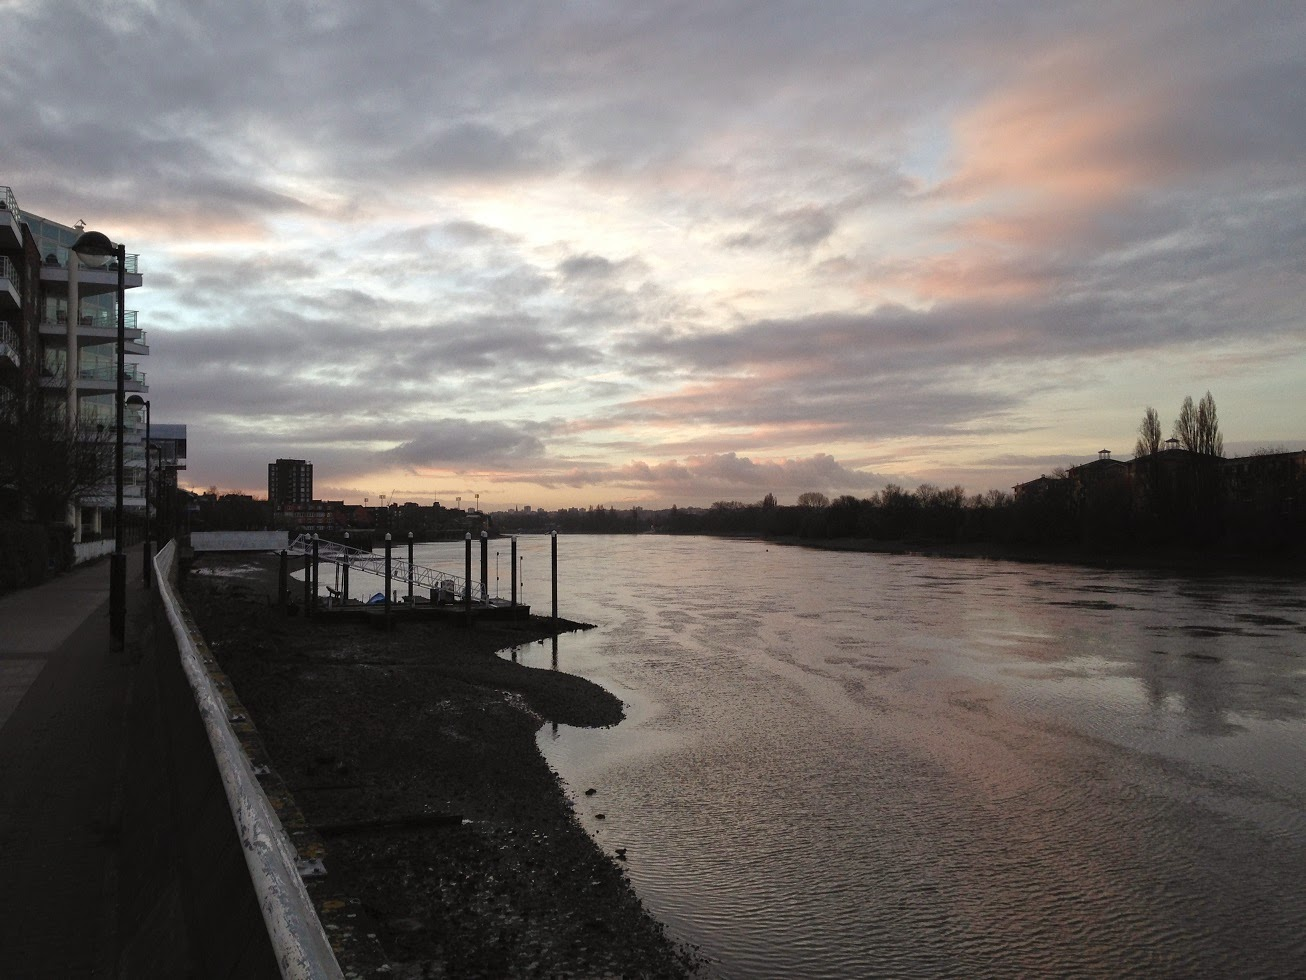 River Thames, looking towards Fulham and Putney, London